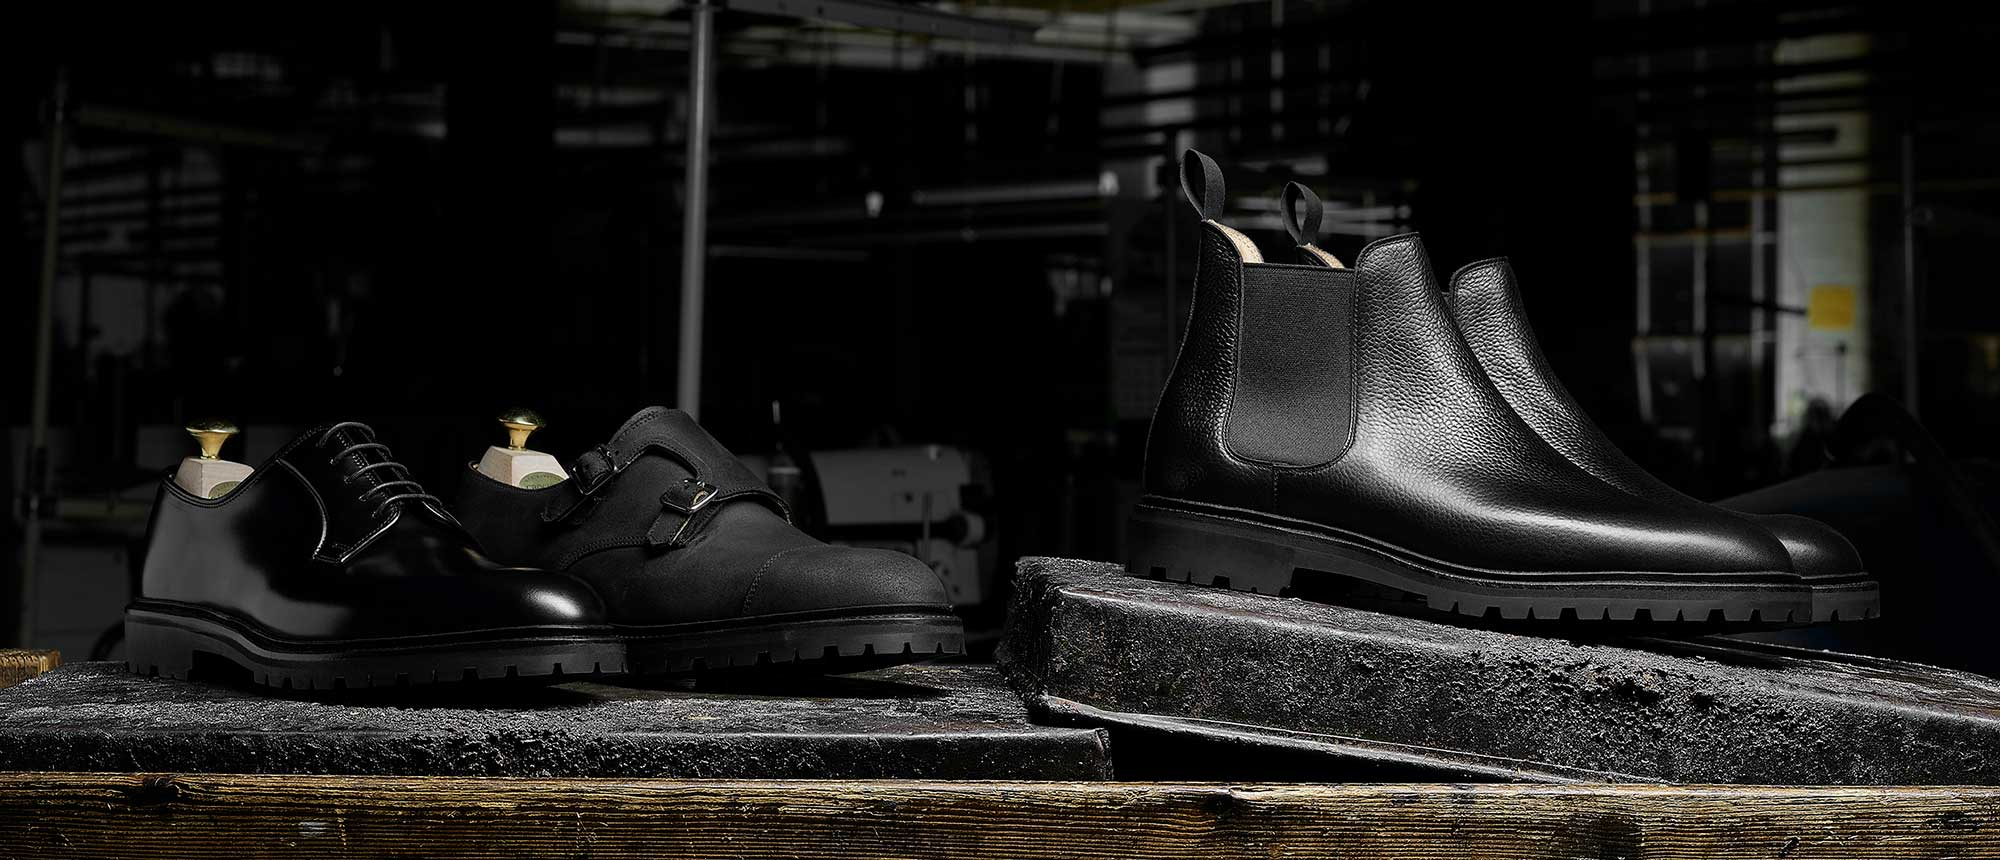 Crockett & Jones - The Black Editions Details... Chelsea XI